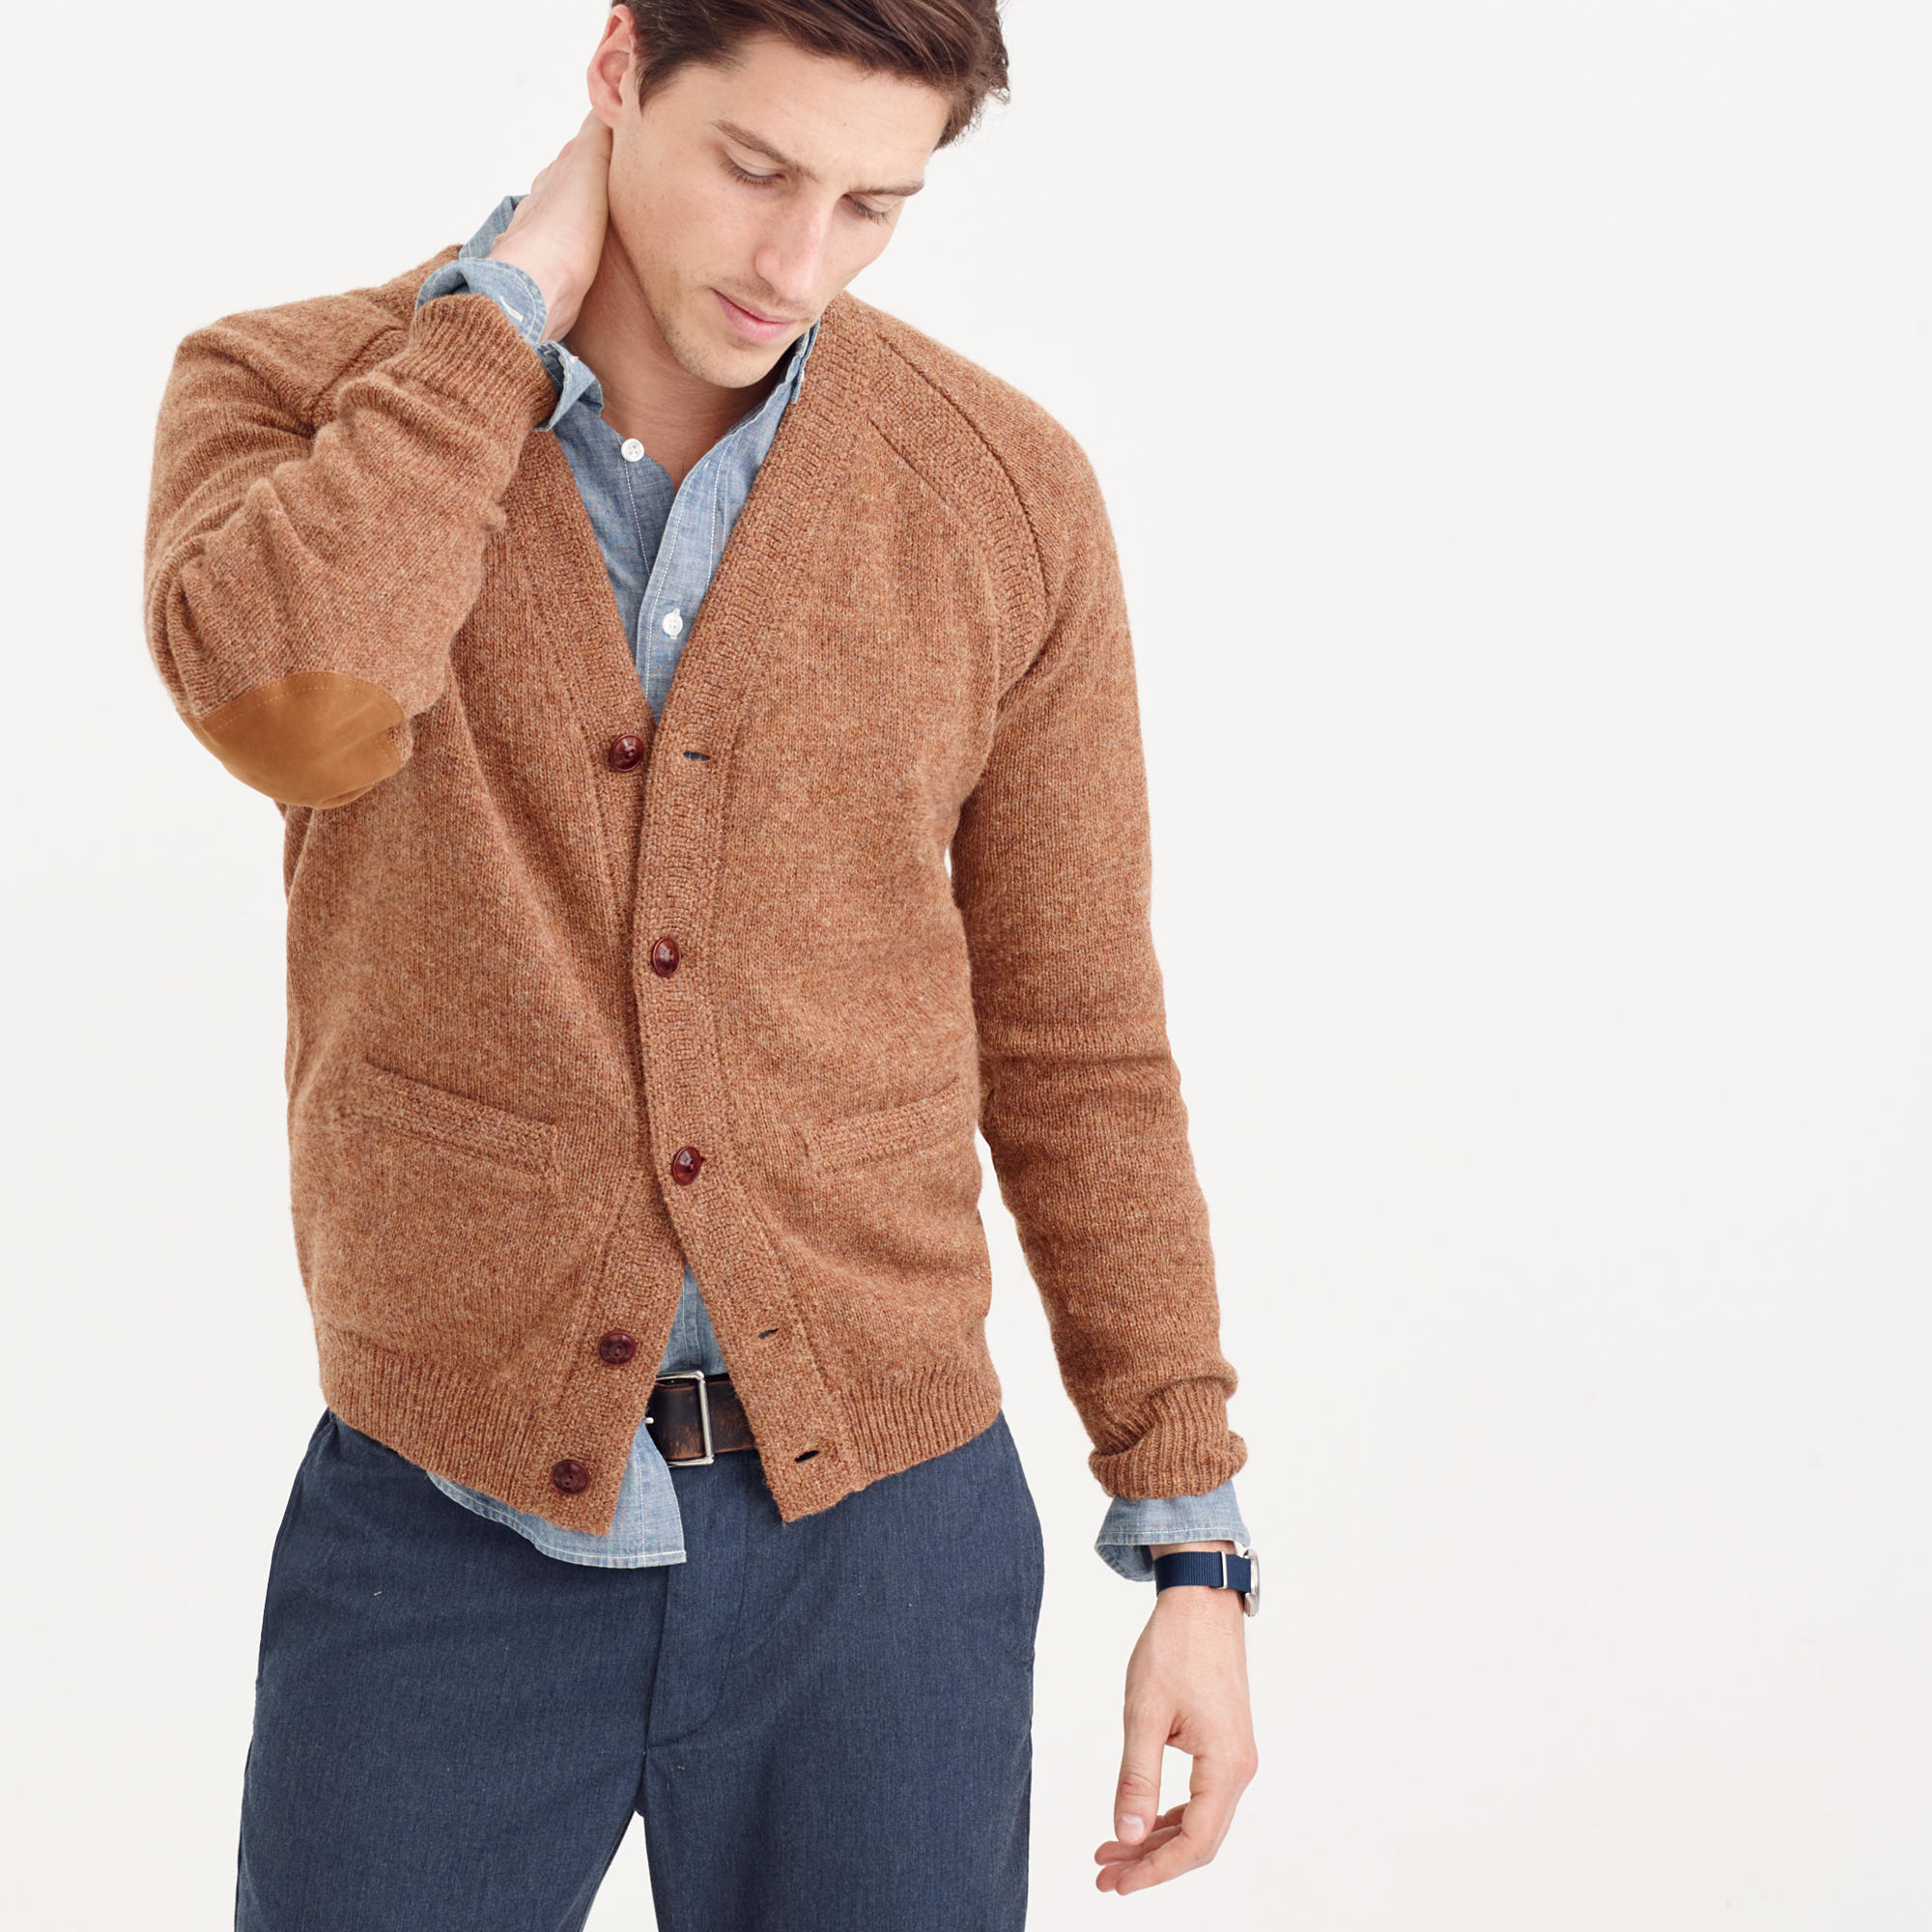 J.crew Wallace & Barnes English Shetland Wool Cardigan Sweater in ...